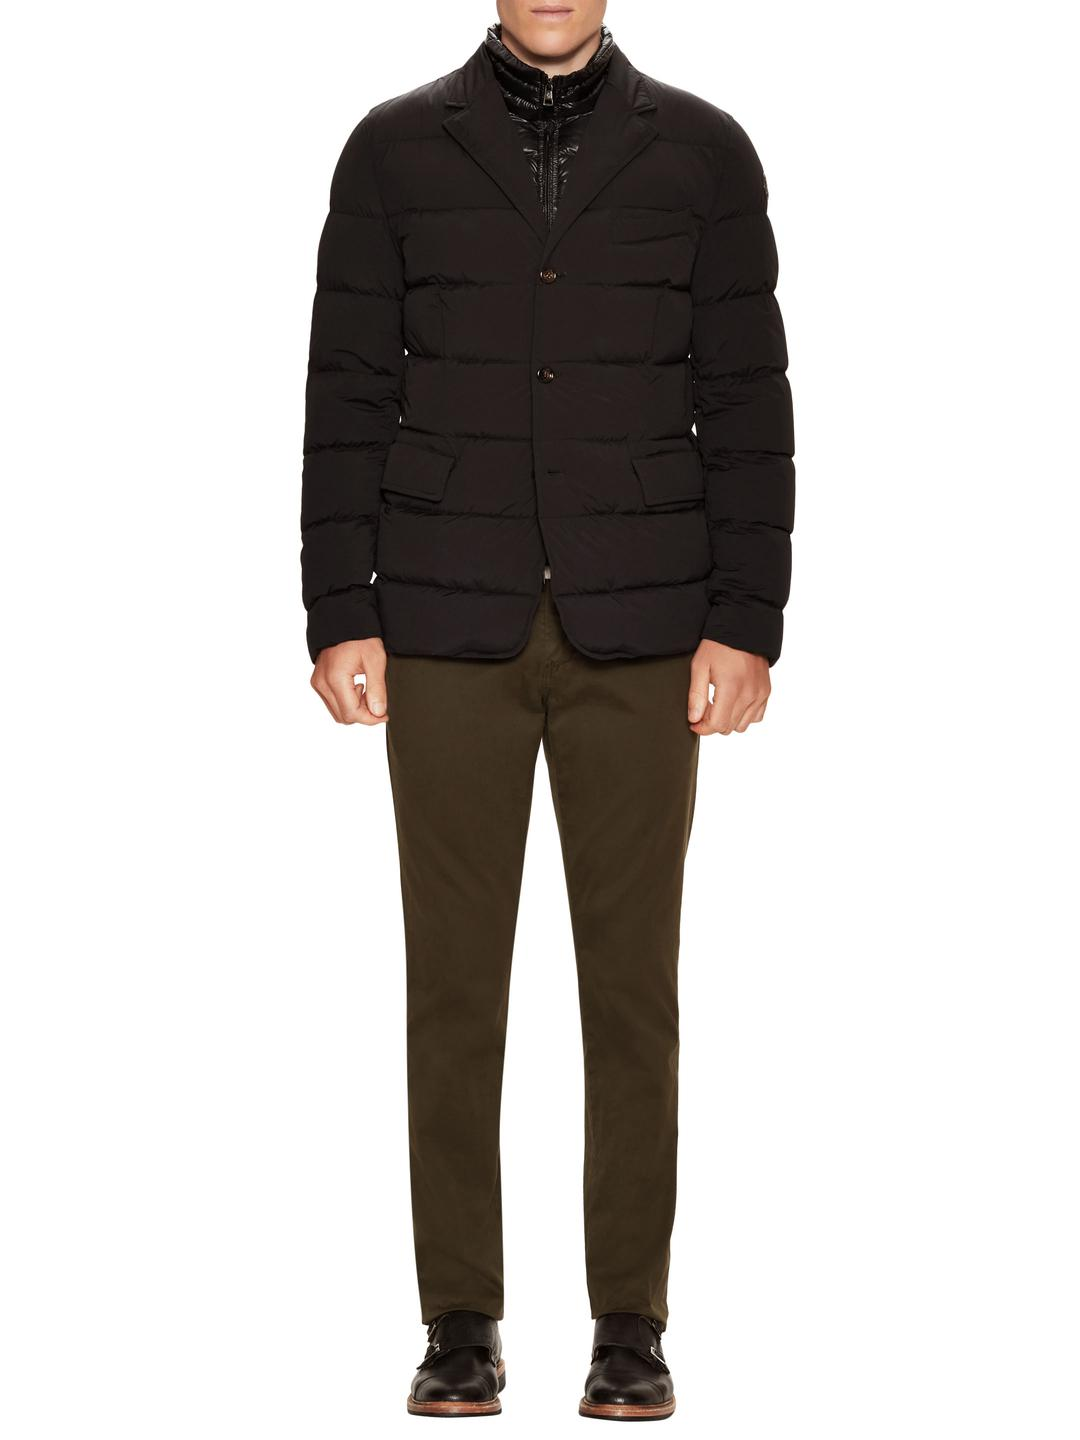 Moncler Synthetic Rouillac Blazer Jacket in Navy Blue (Blue) for Men